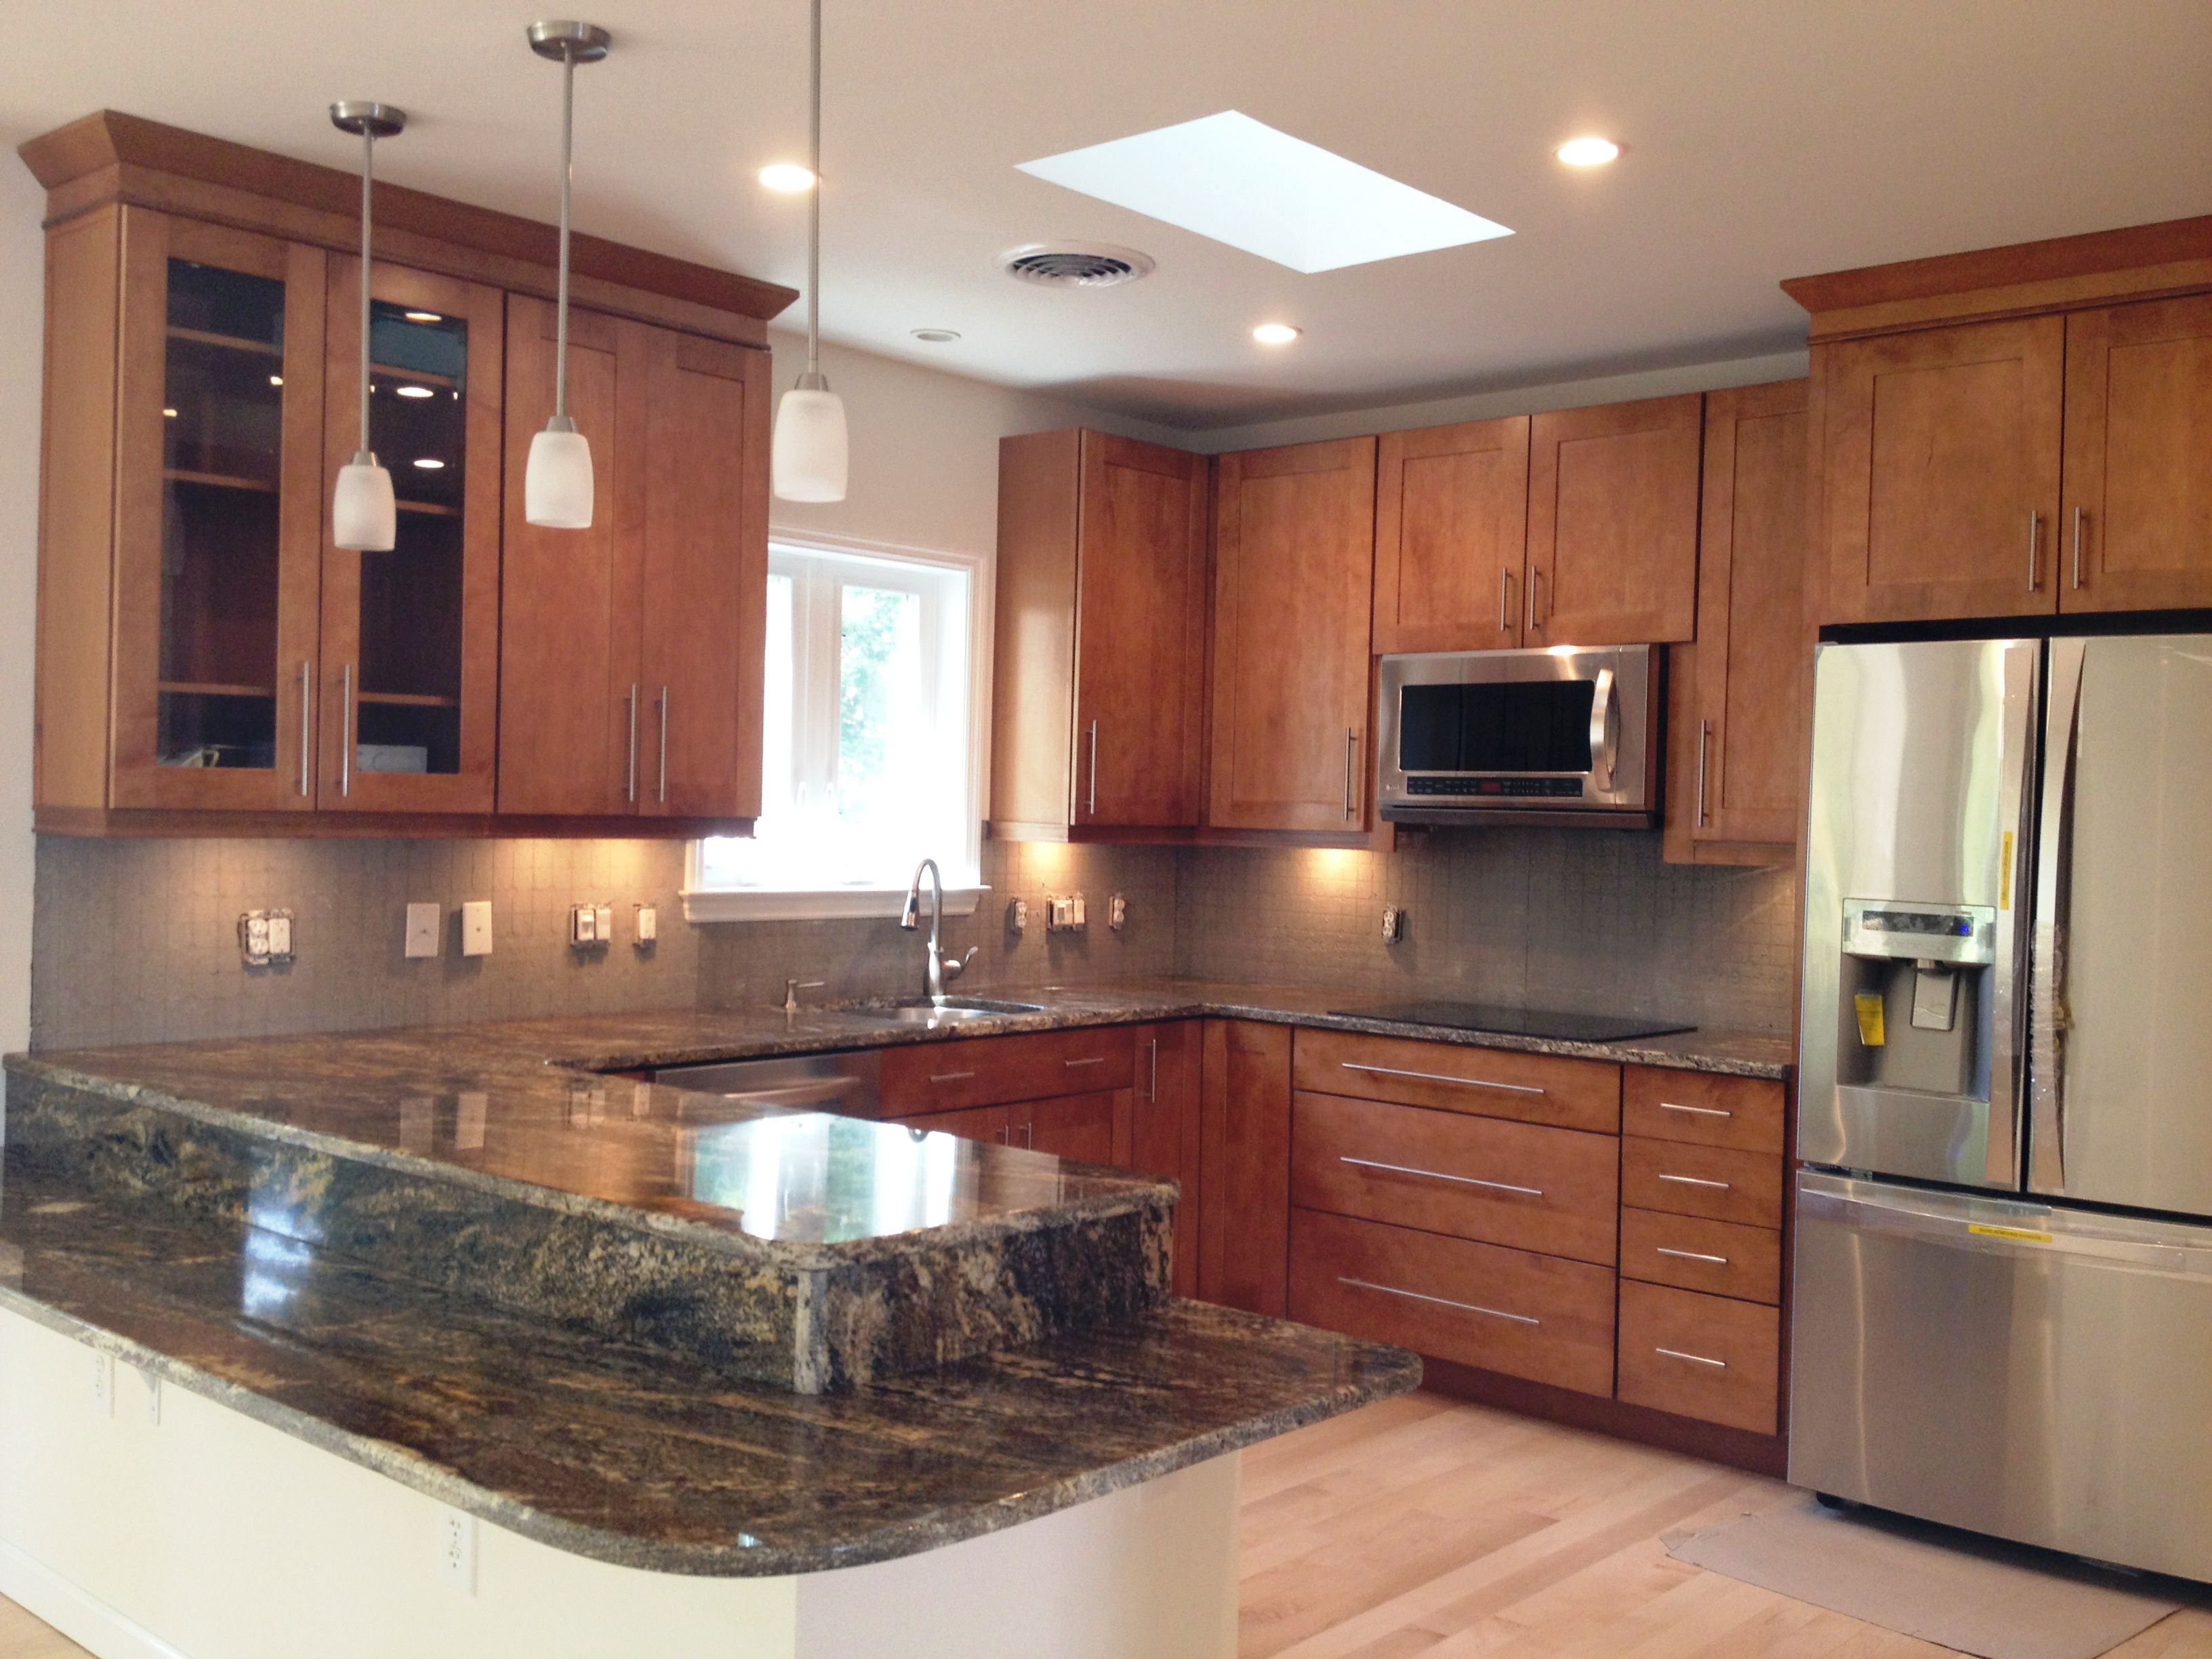 Pin By Prosedge On Modular Home Designs Interior Modular Home Designs Modular Homes Home